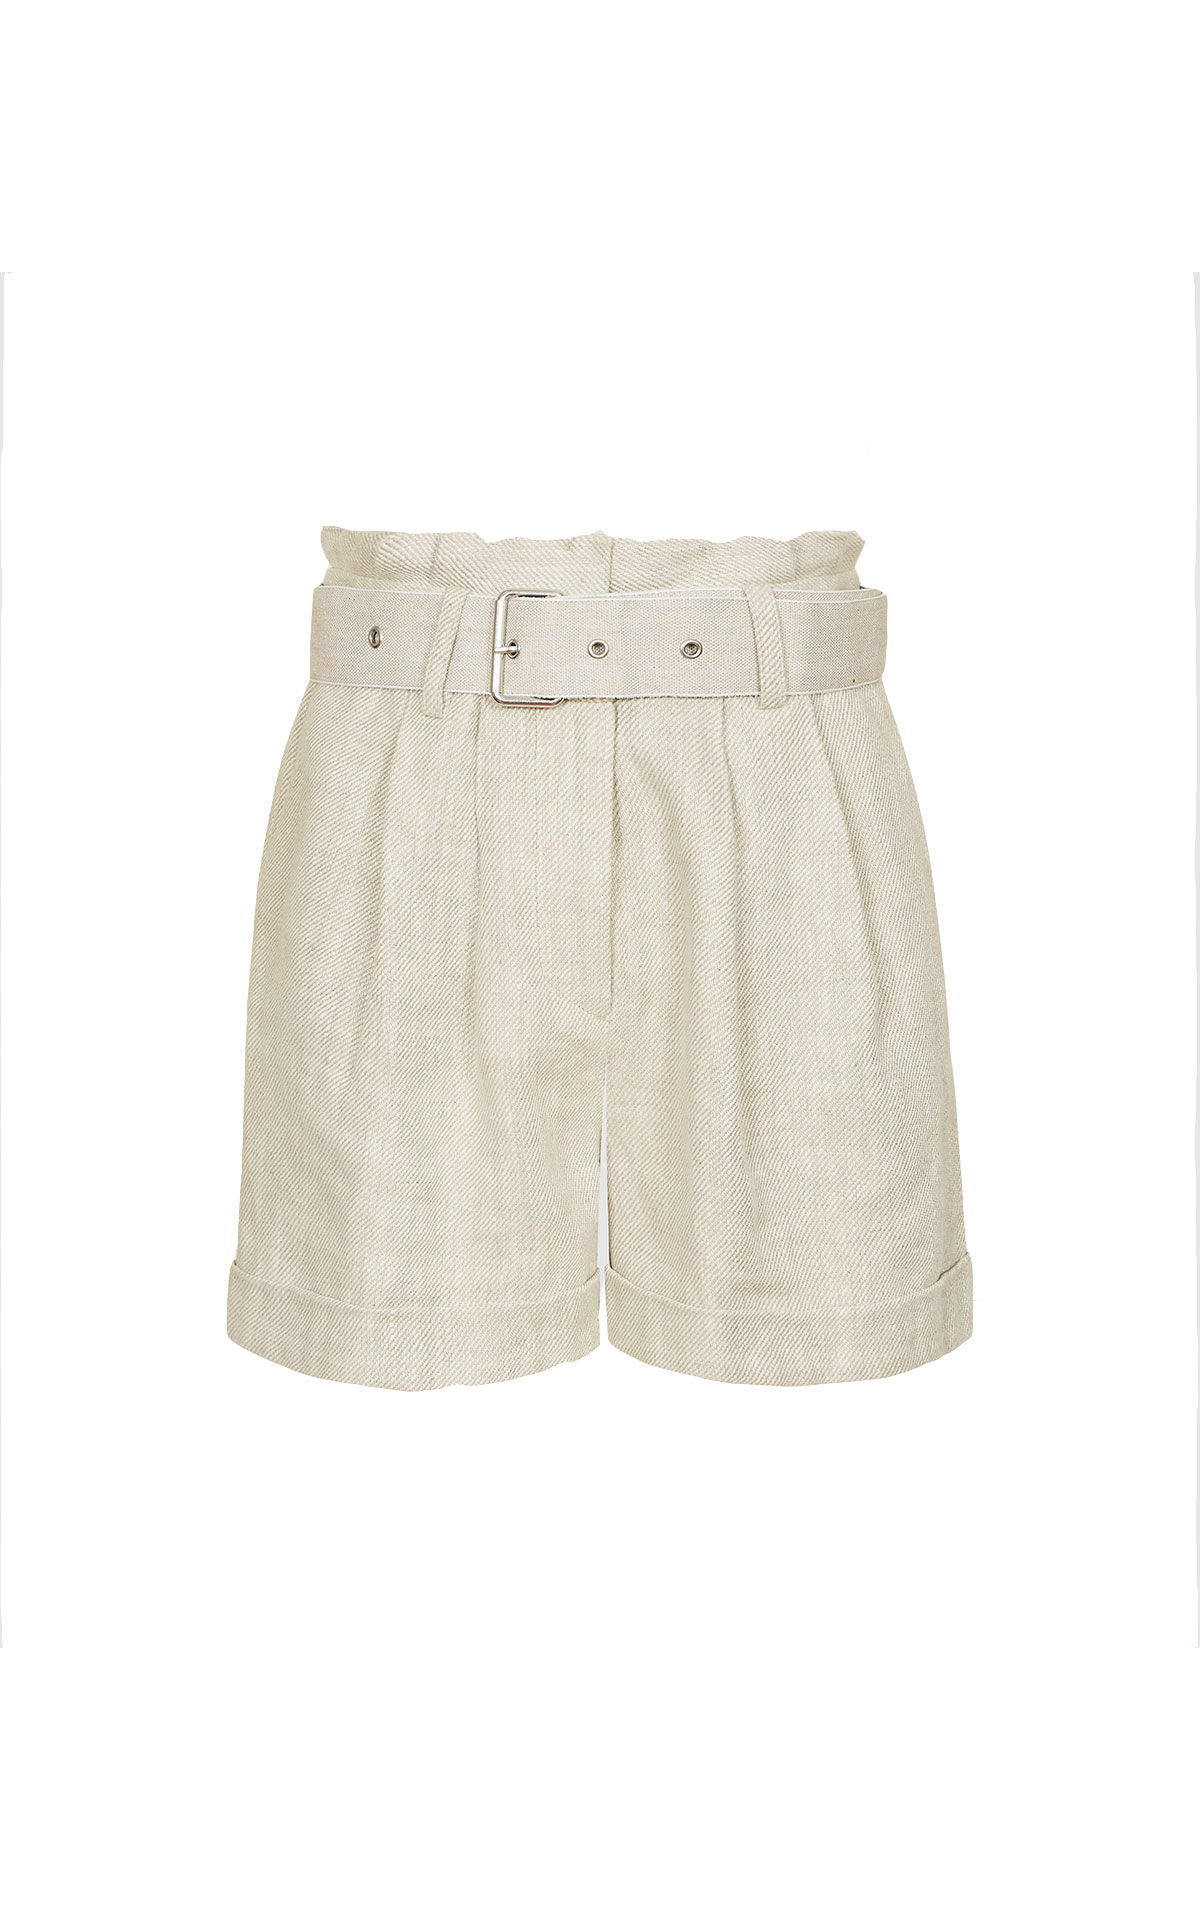 Reiss Romy neutral shorts from Bicester Village